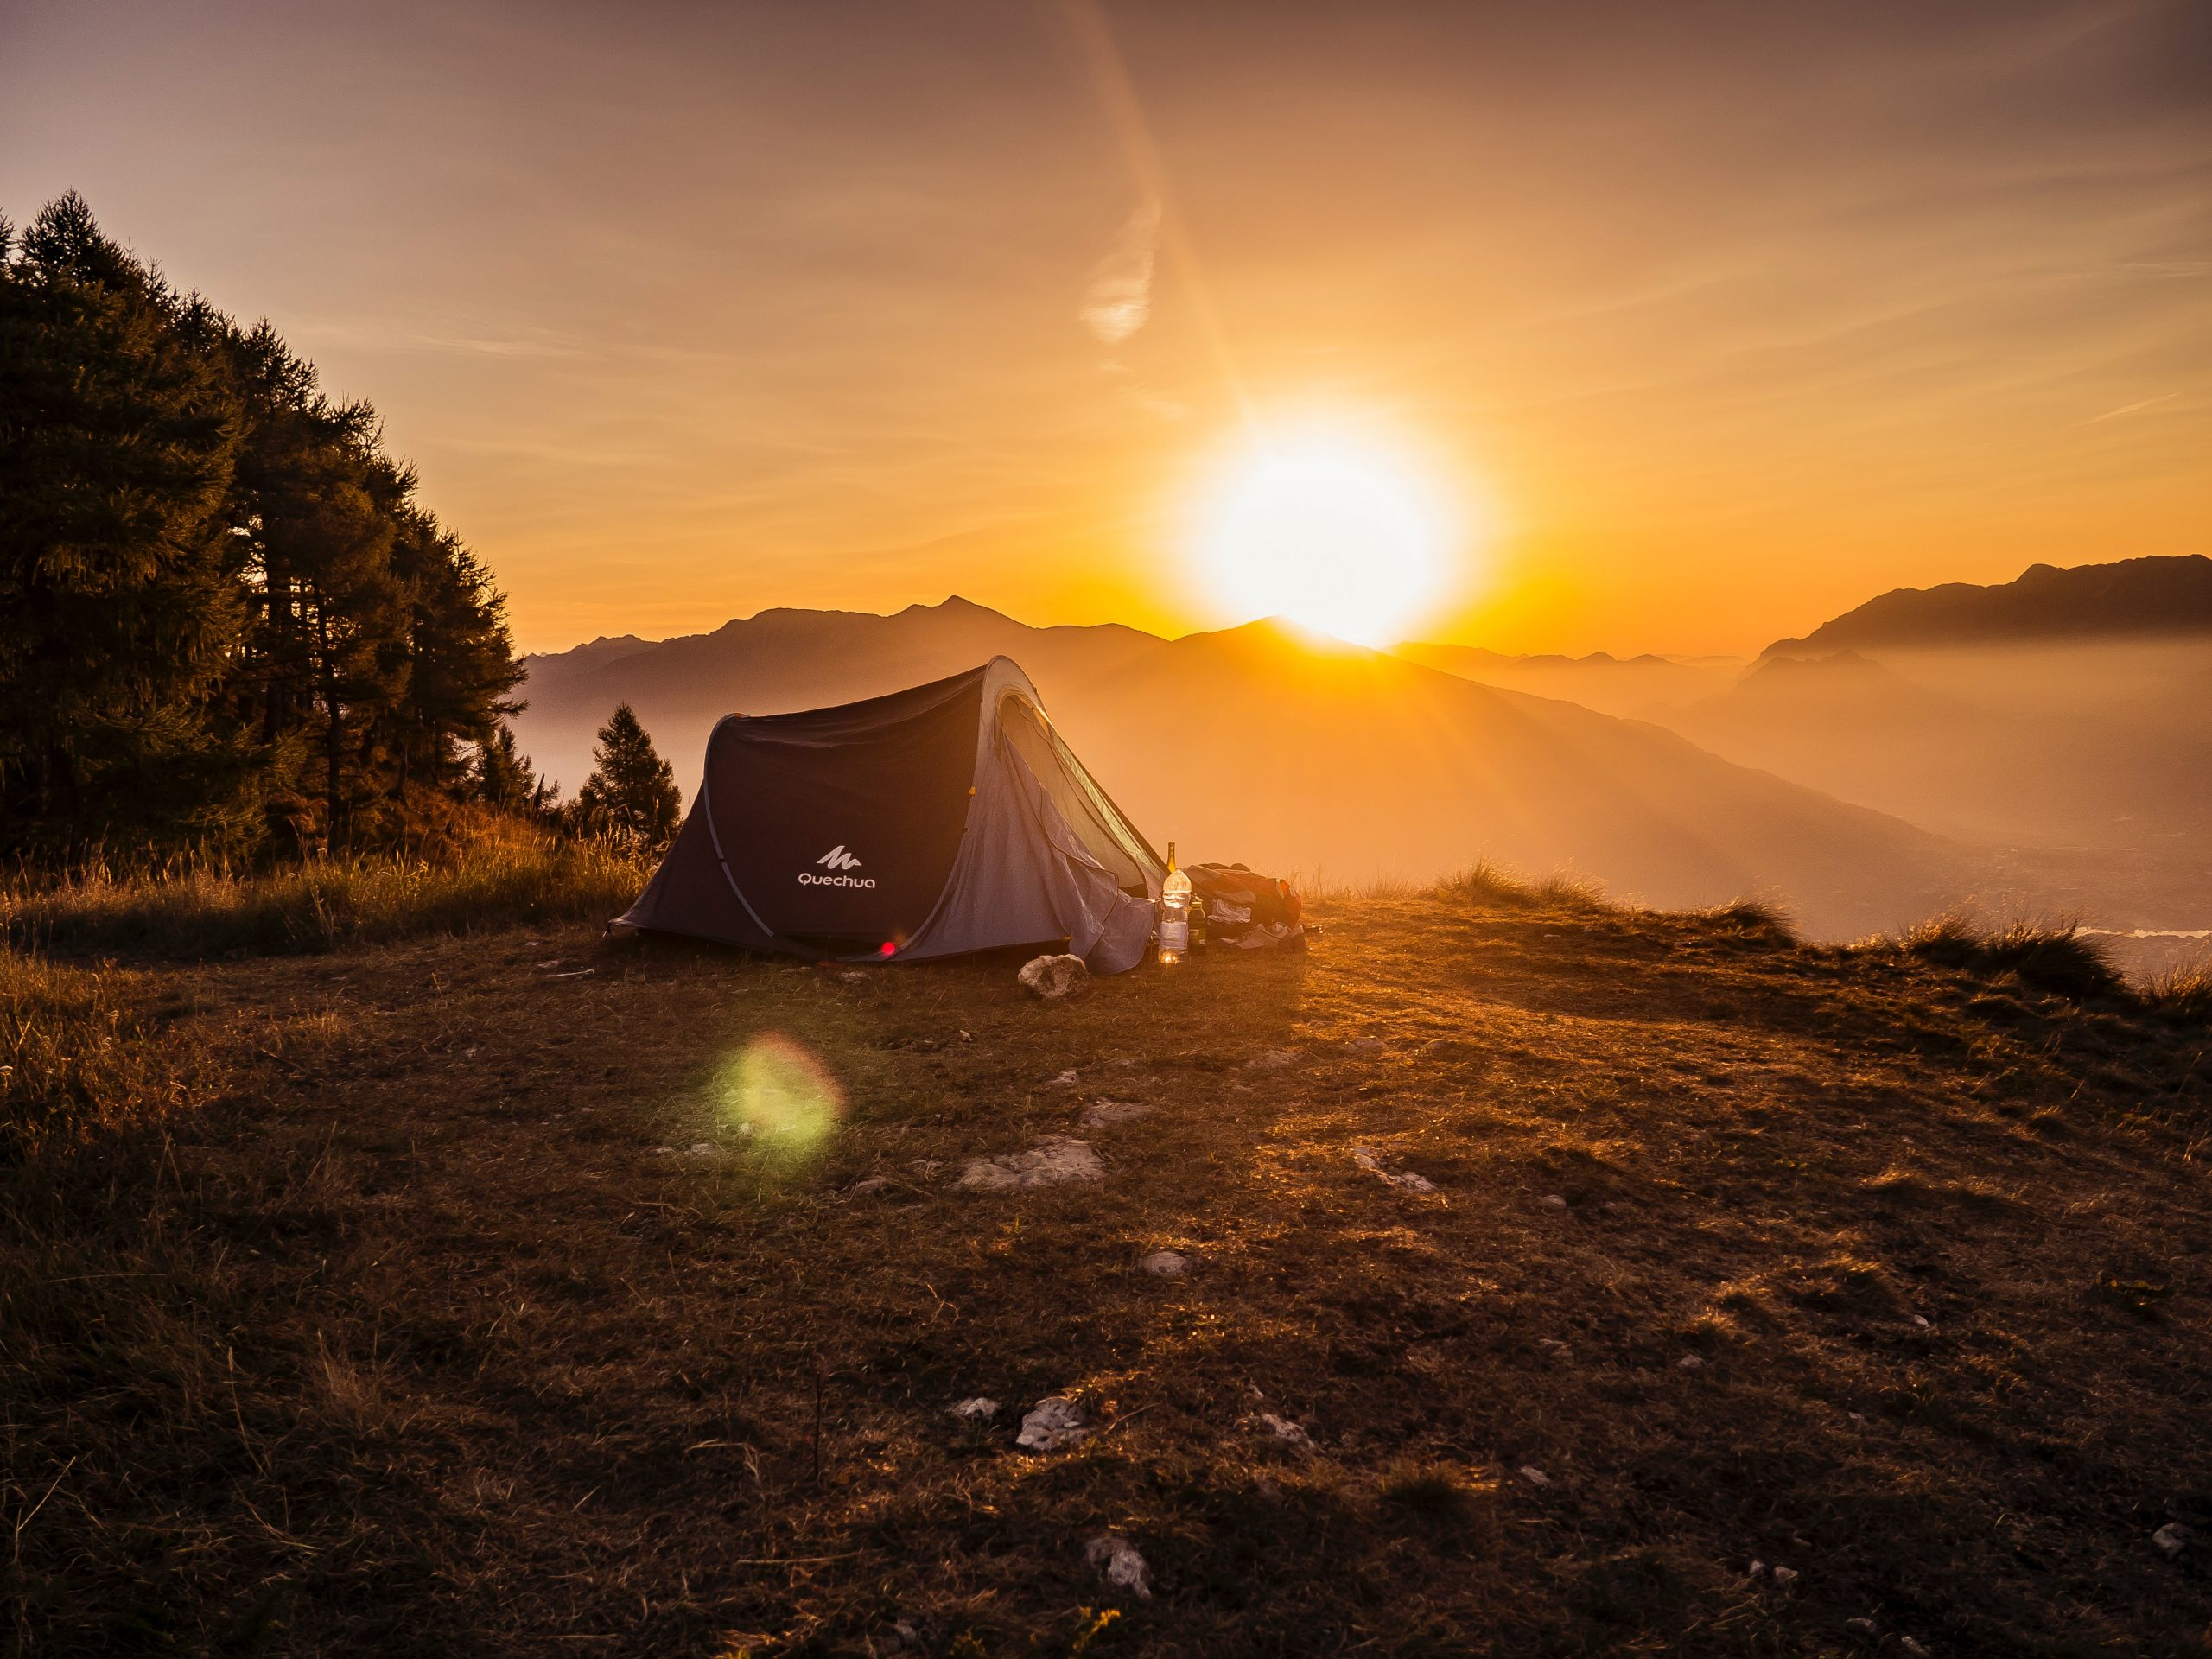 tent pitched on mountaintop campsite at sunset